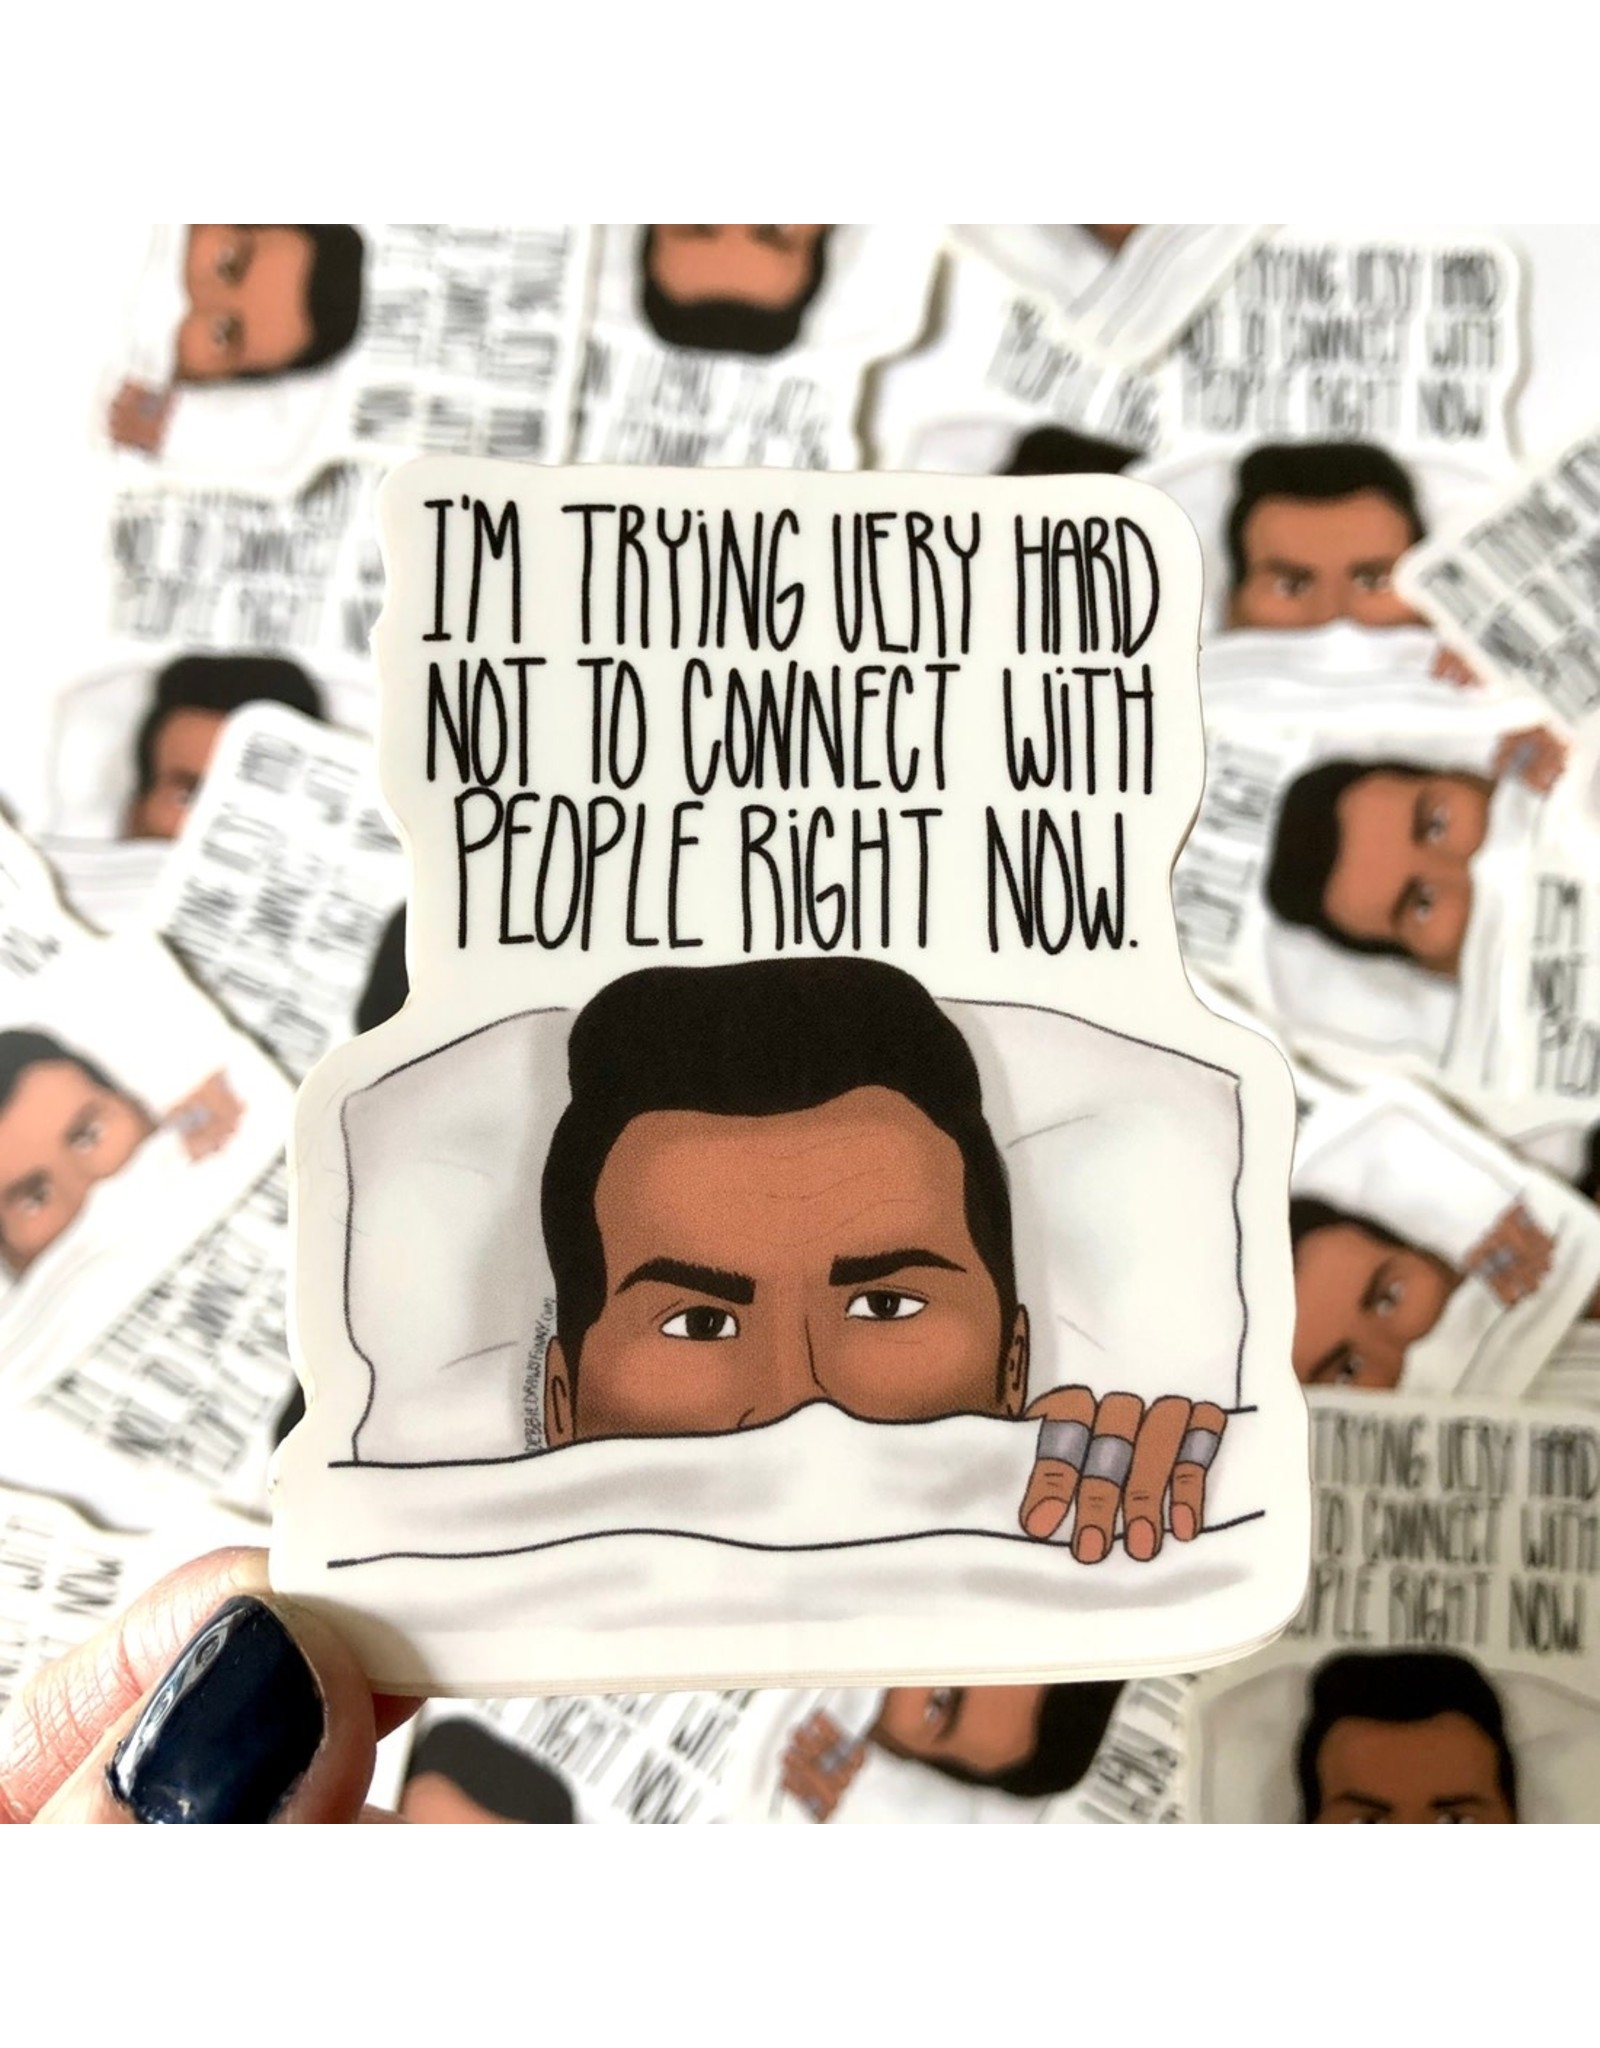 Debbie Draws Funny Sticker - I'm Trying Very Hard Not To Connect With People - Schitt's Creek - David Rose